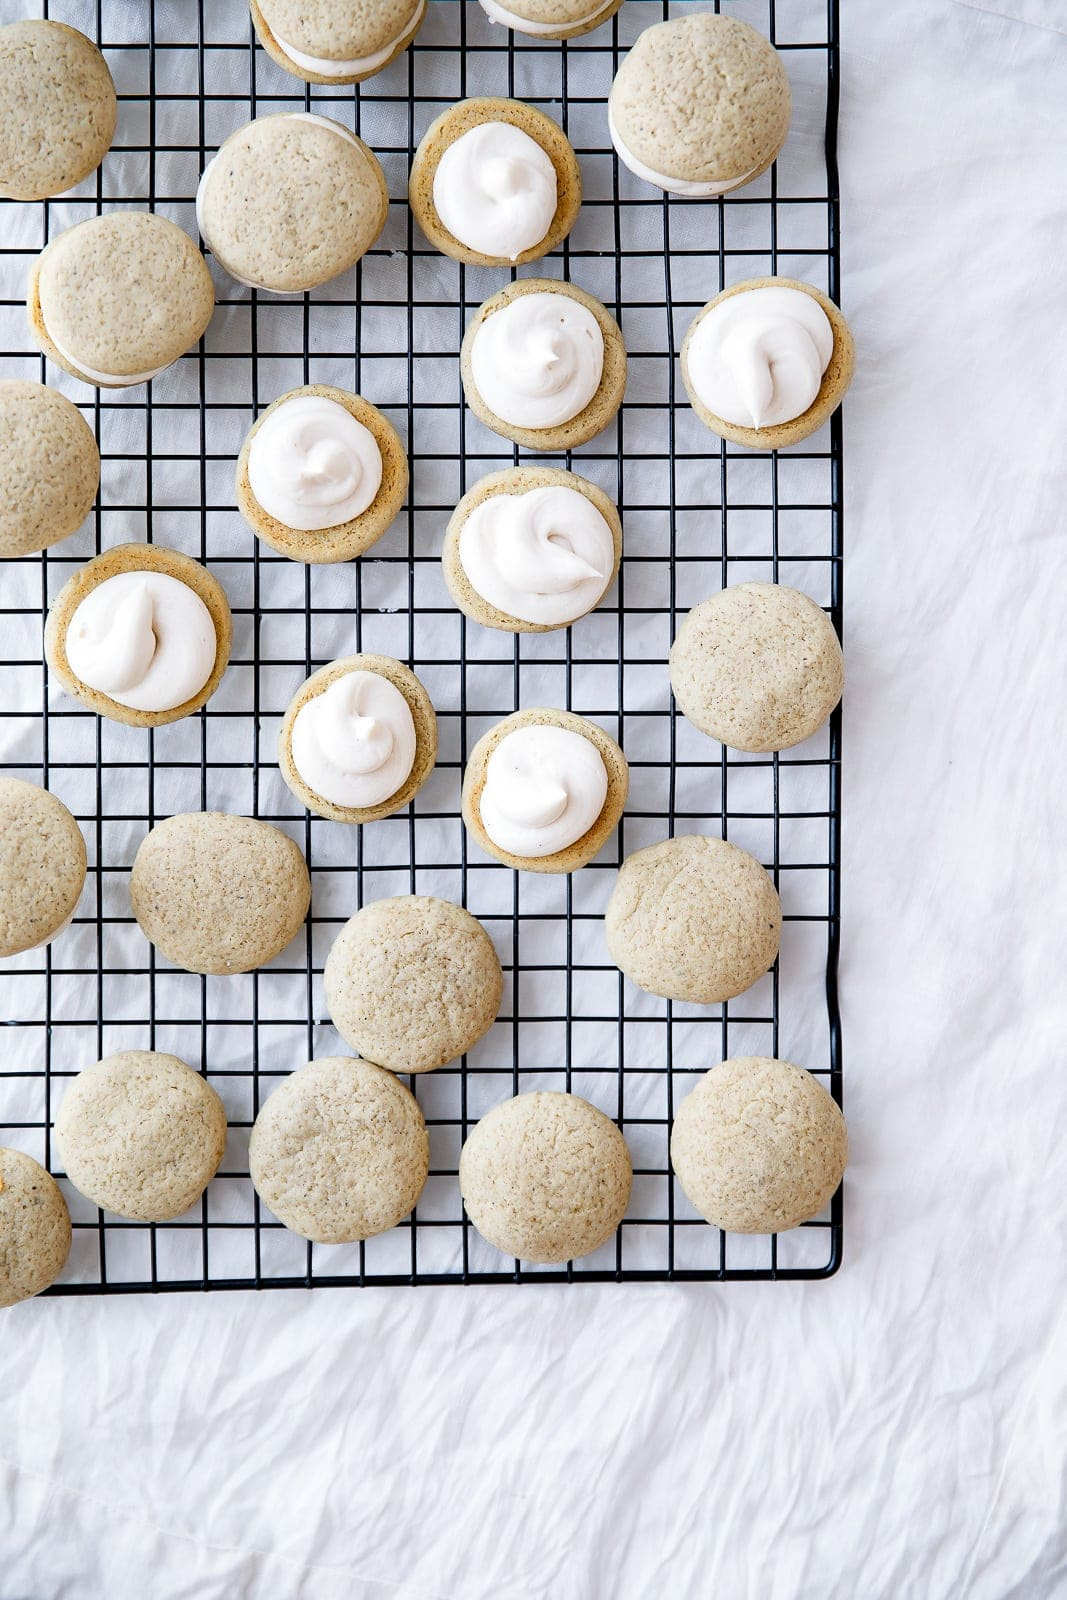 Have your chai latte and eat it too with these chewy Chai Latte Sandwich Cookies with creamy chai-spiked frosting!